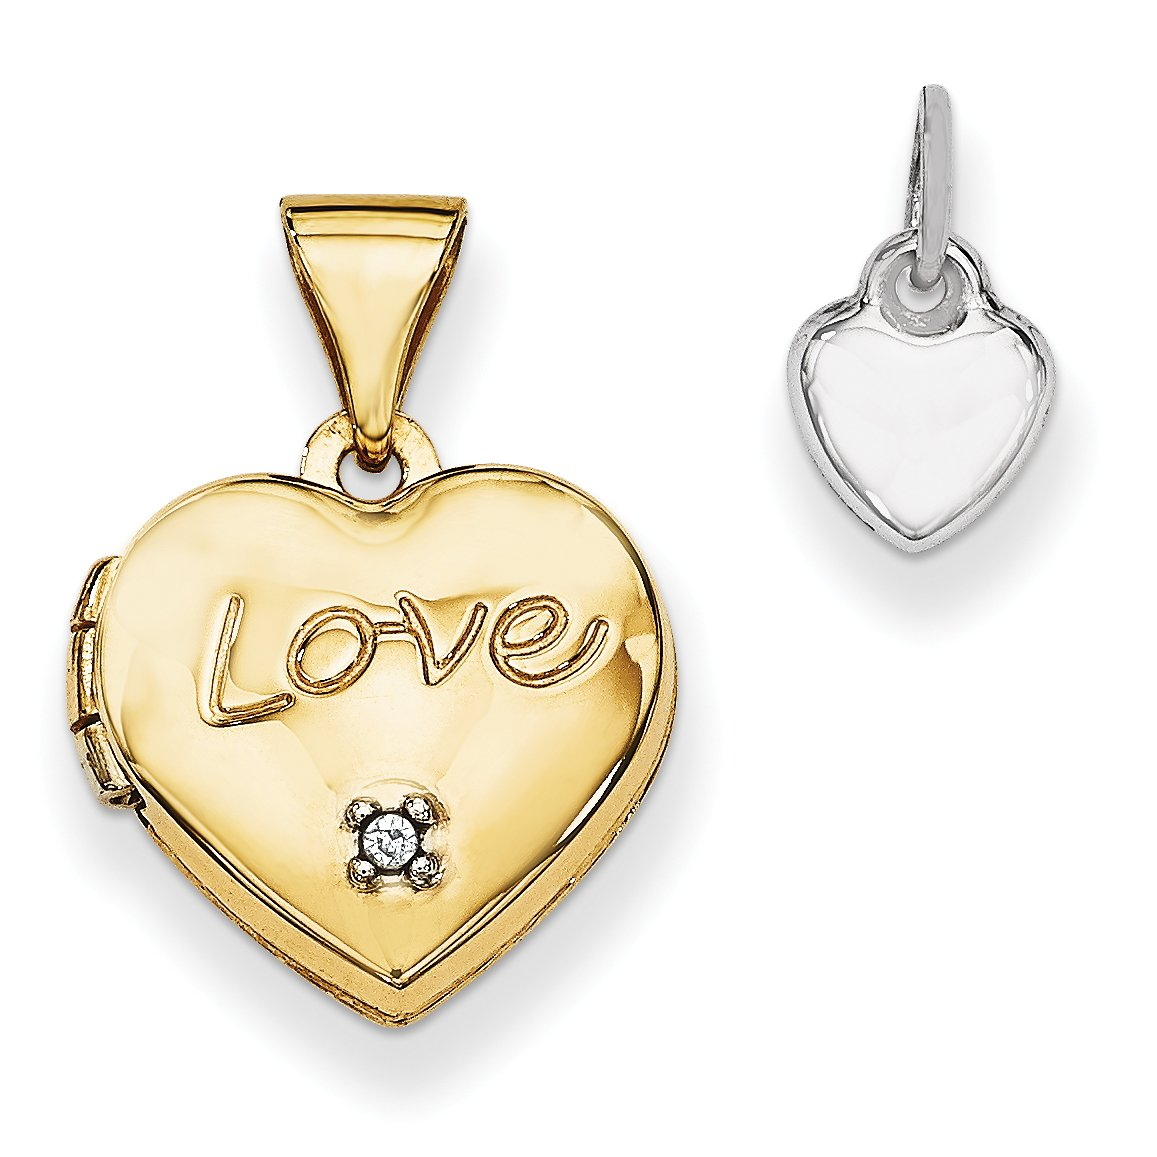 ICE CARATS 14k Yellow Gold Two Tone 12mm Heart Diamond Locket Pendant Charm Necklace Fine Jewelry Gift Set For Women Heart